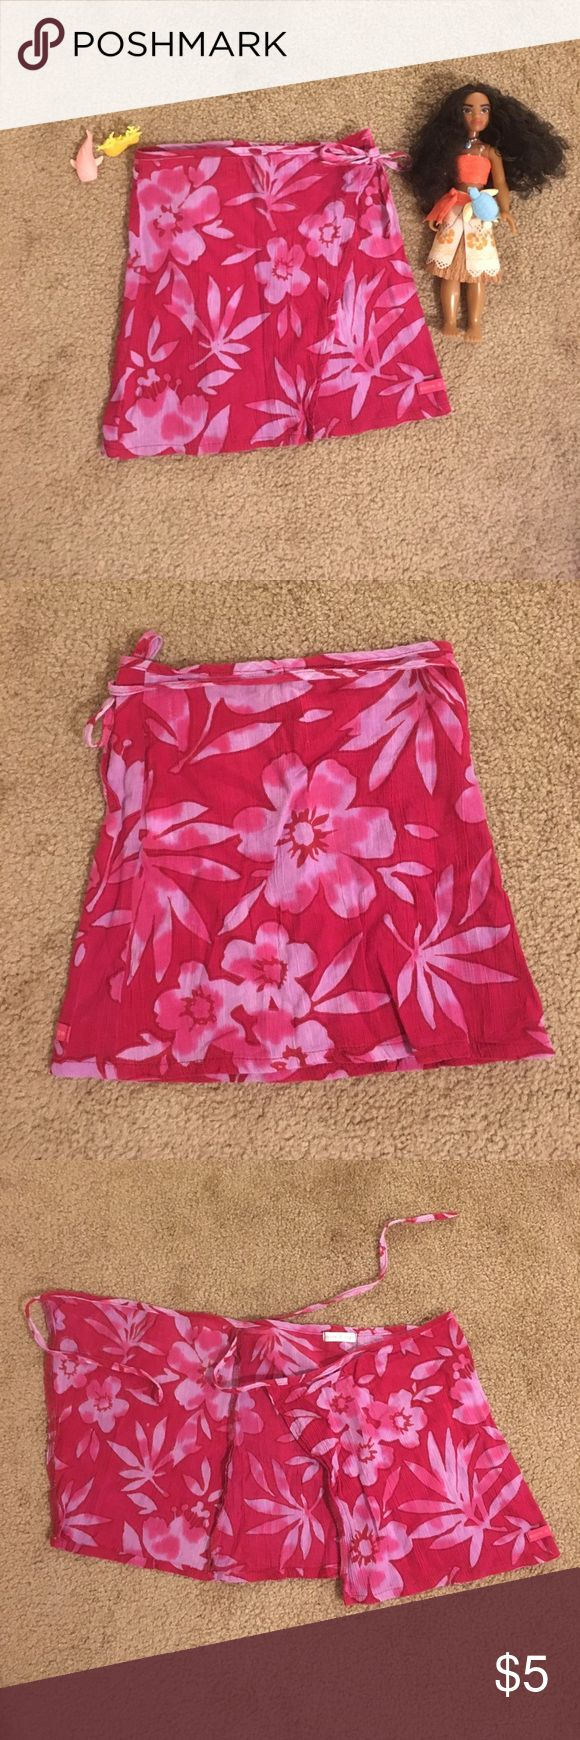 Girls Sarong Style Skirt  Beautiful sarong style wrap skirt for girls. Gorgeous vibrant fuchsia color. Tags says 3 years. My daughter wore it as a swim coverup. **Note toys not for sale.** Sucre D'Orge Swim Coverups